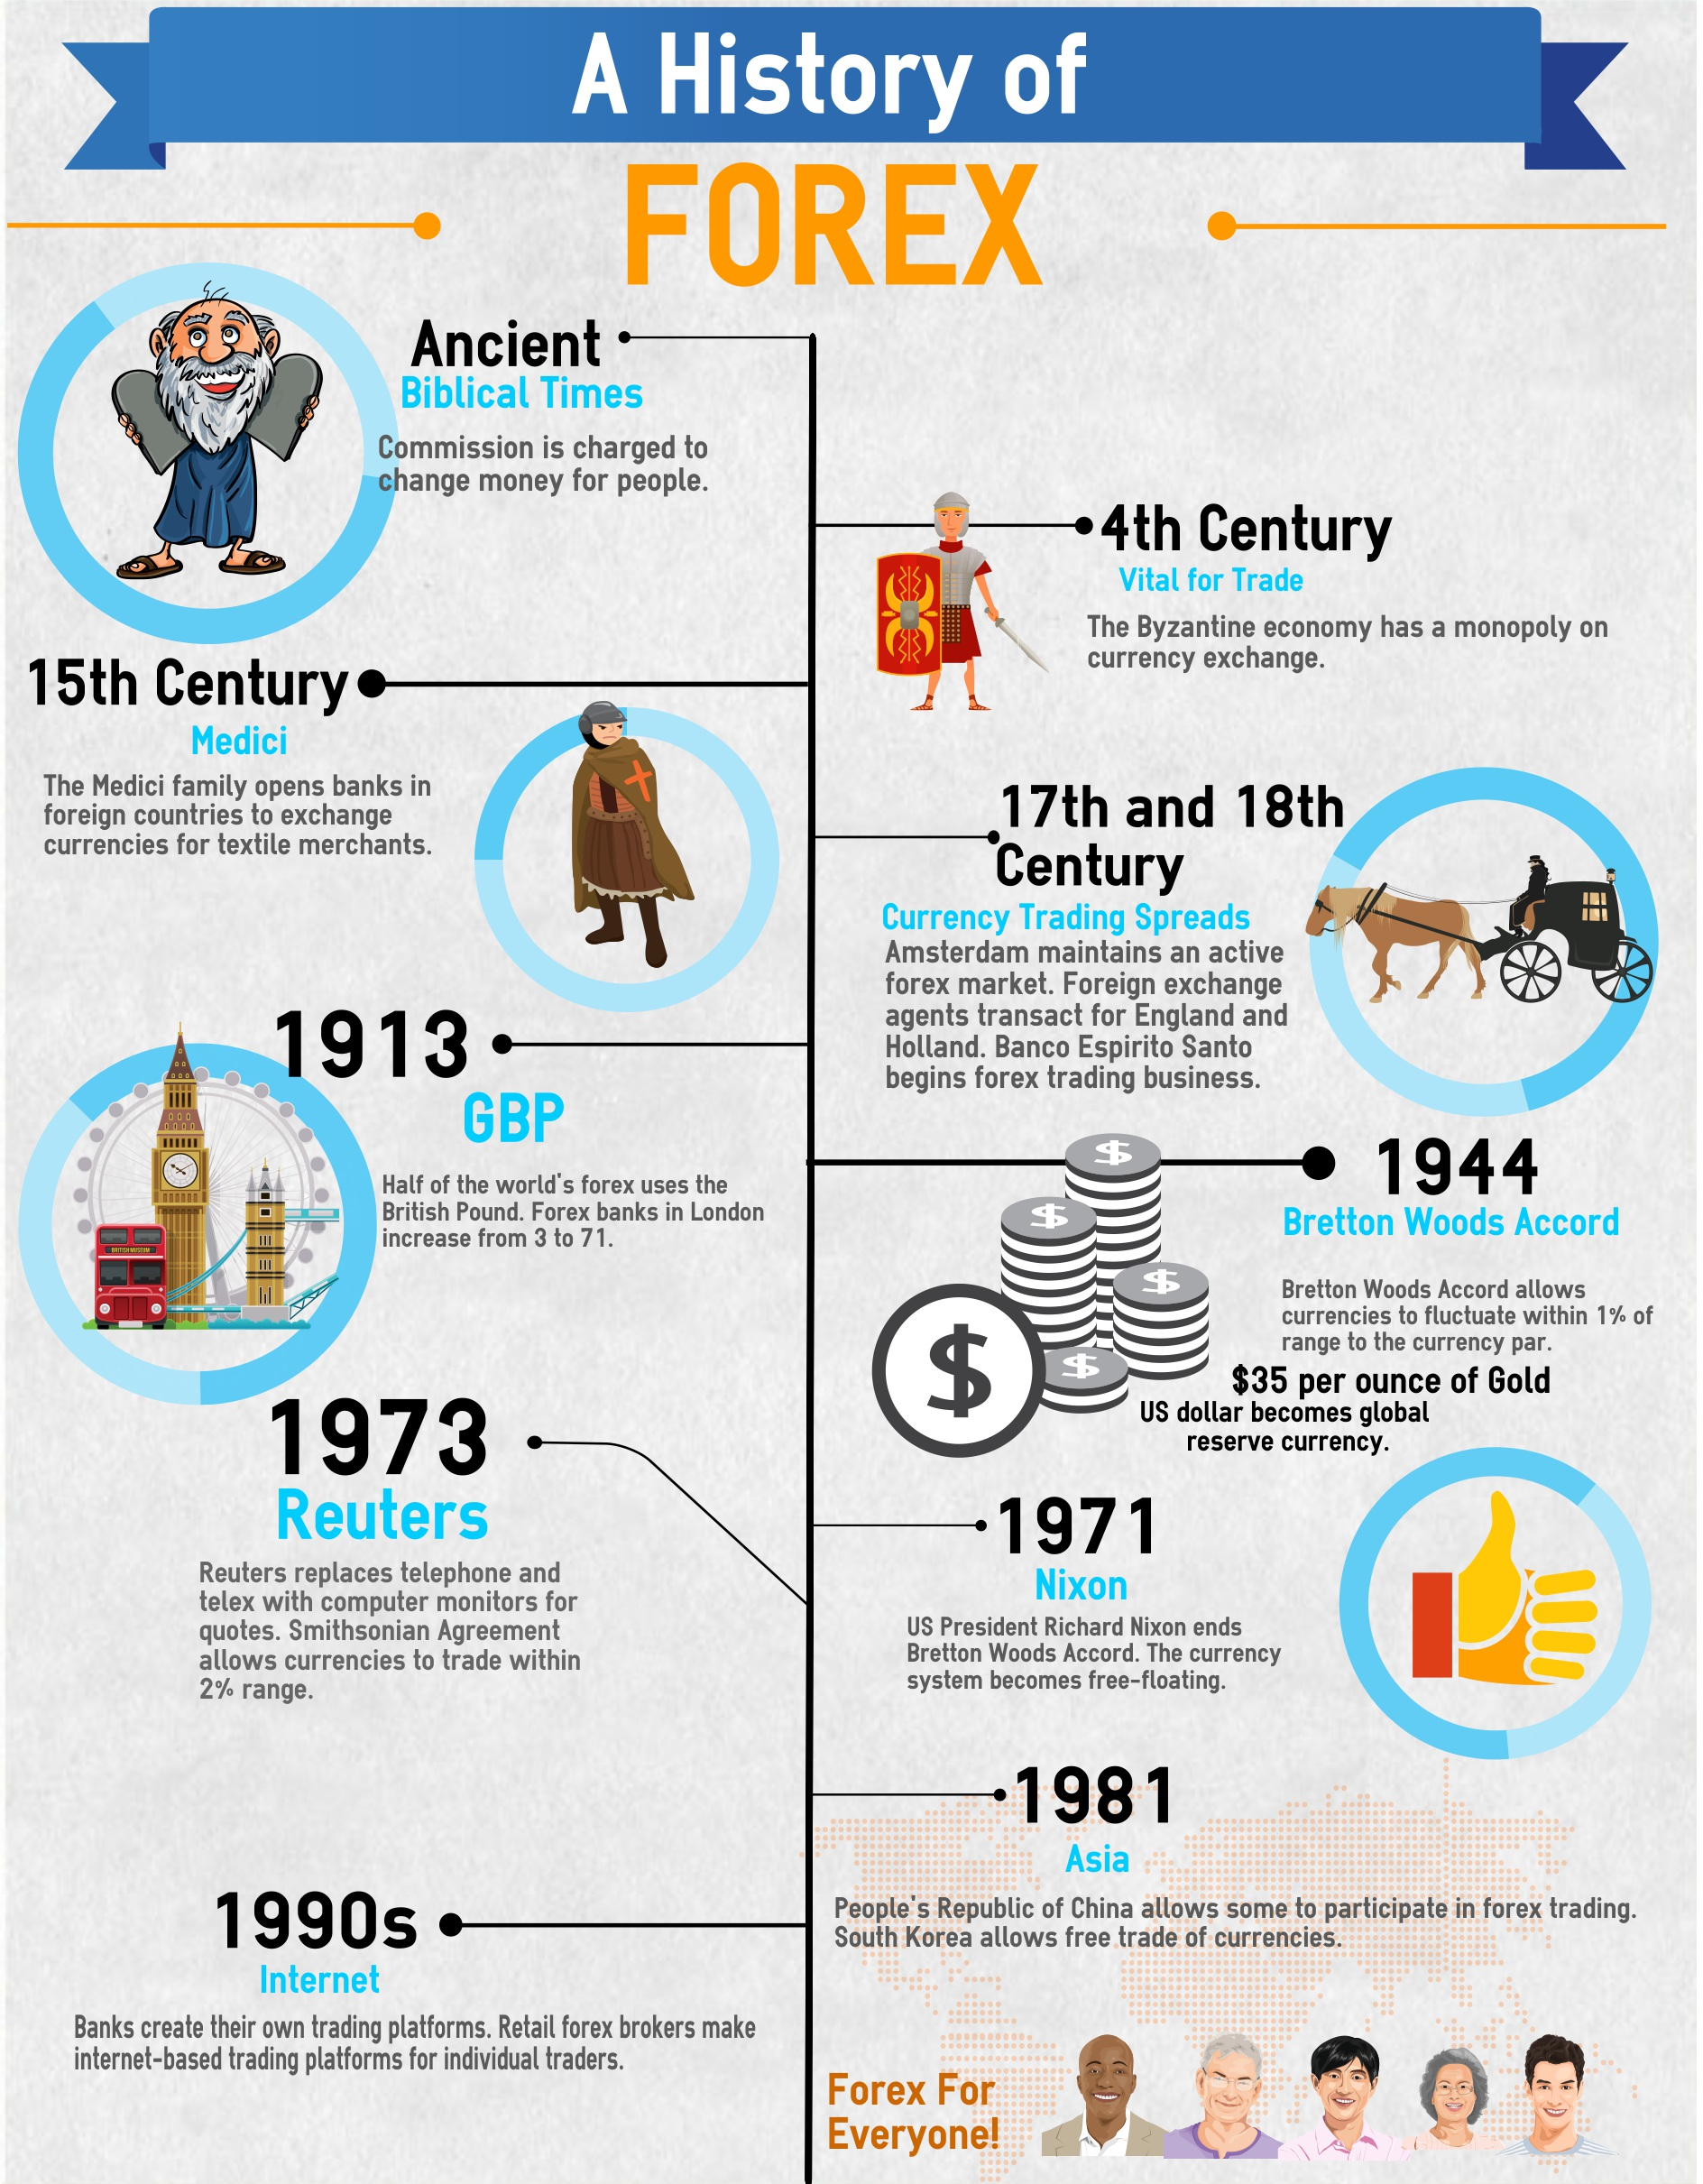 The History of Forex Trading